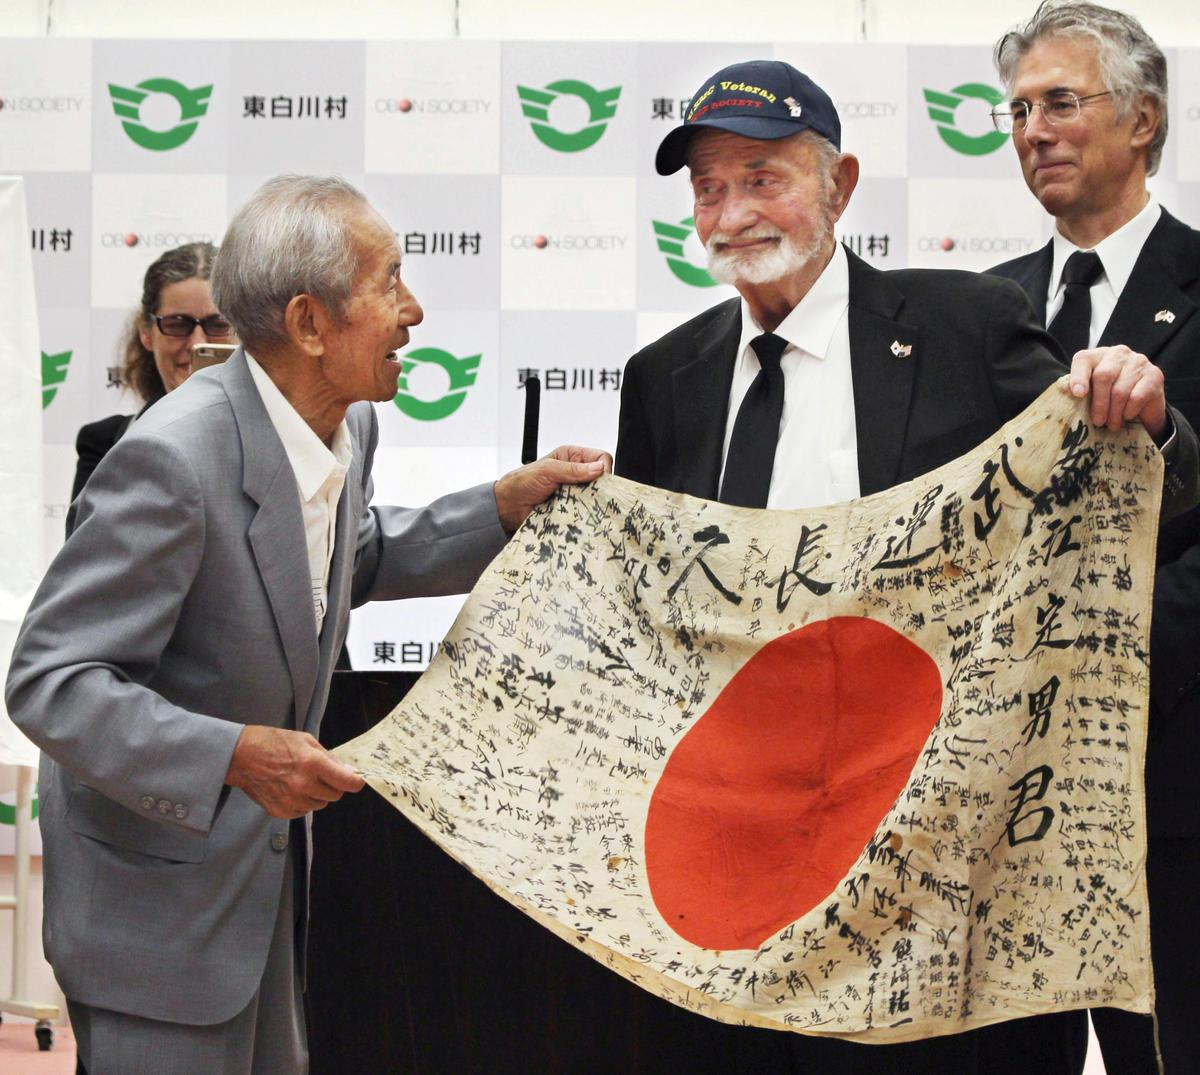 U.S. WW2 Veteran Returns Flag To Family Of Fallen Japanese